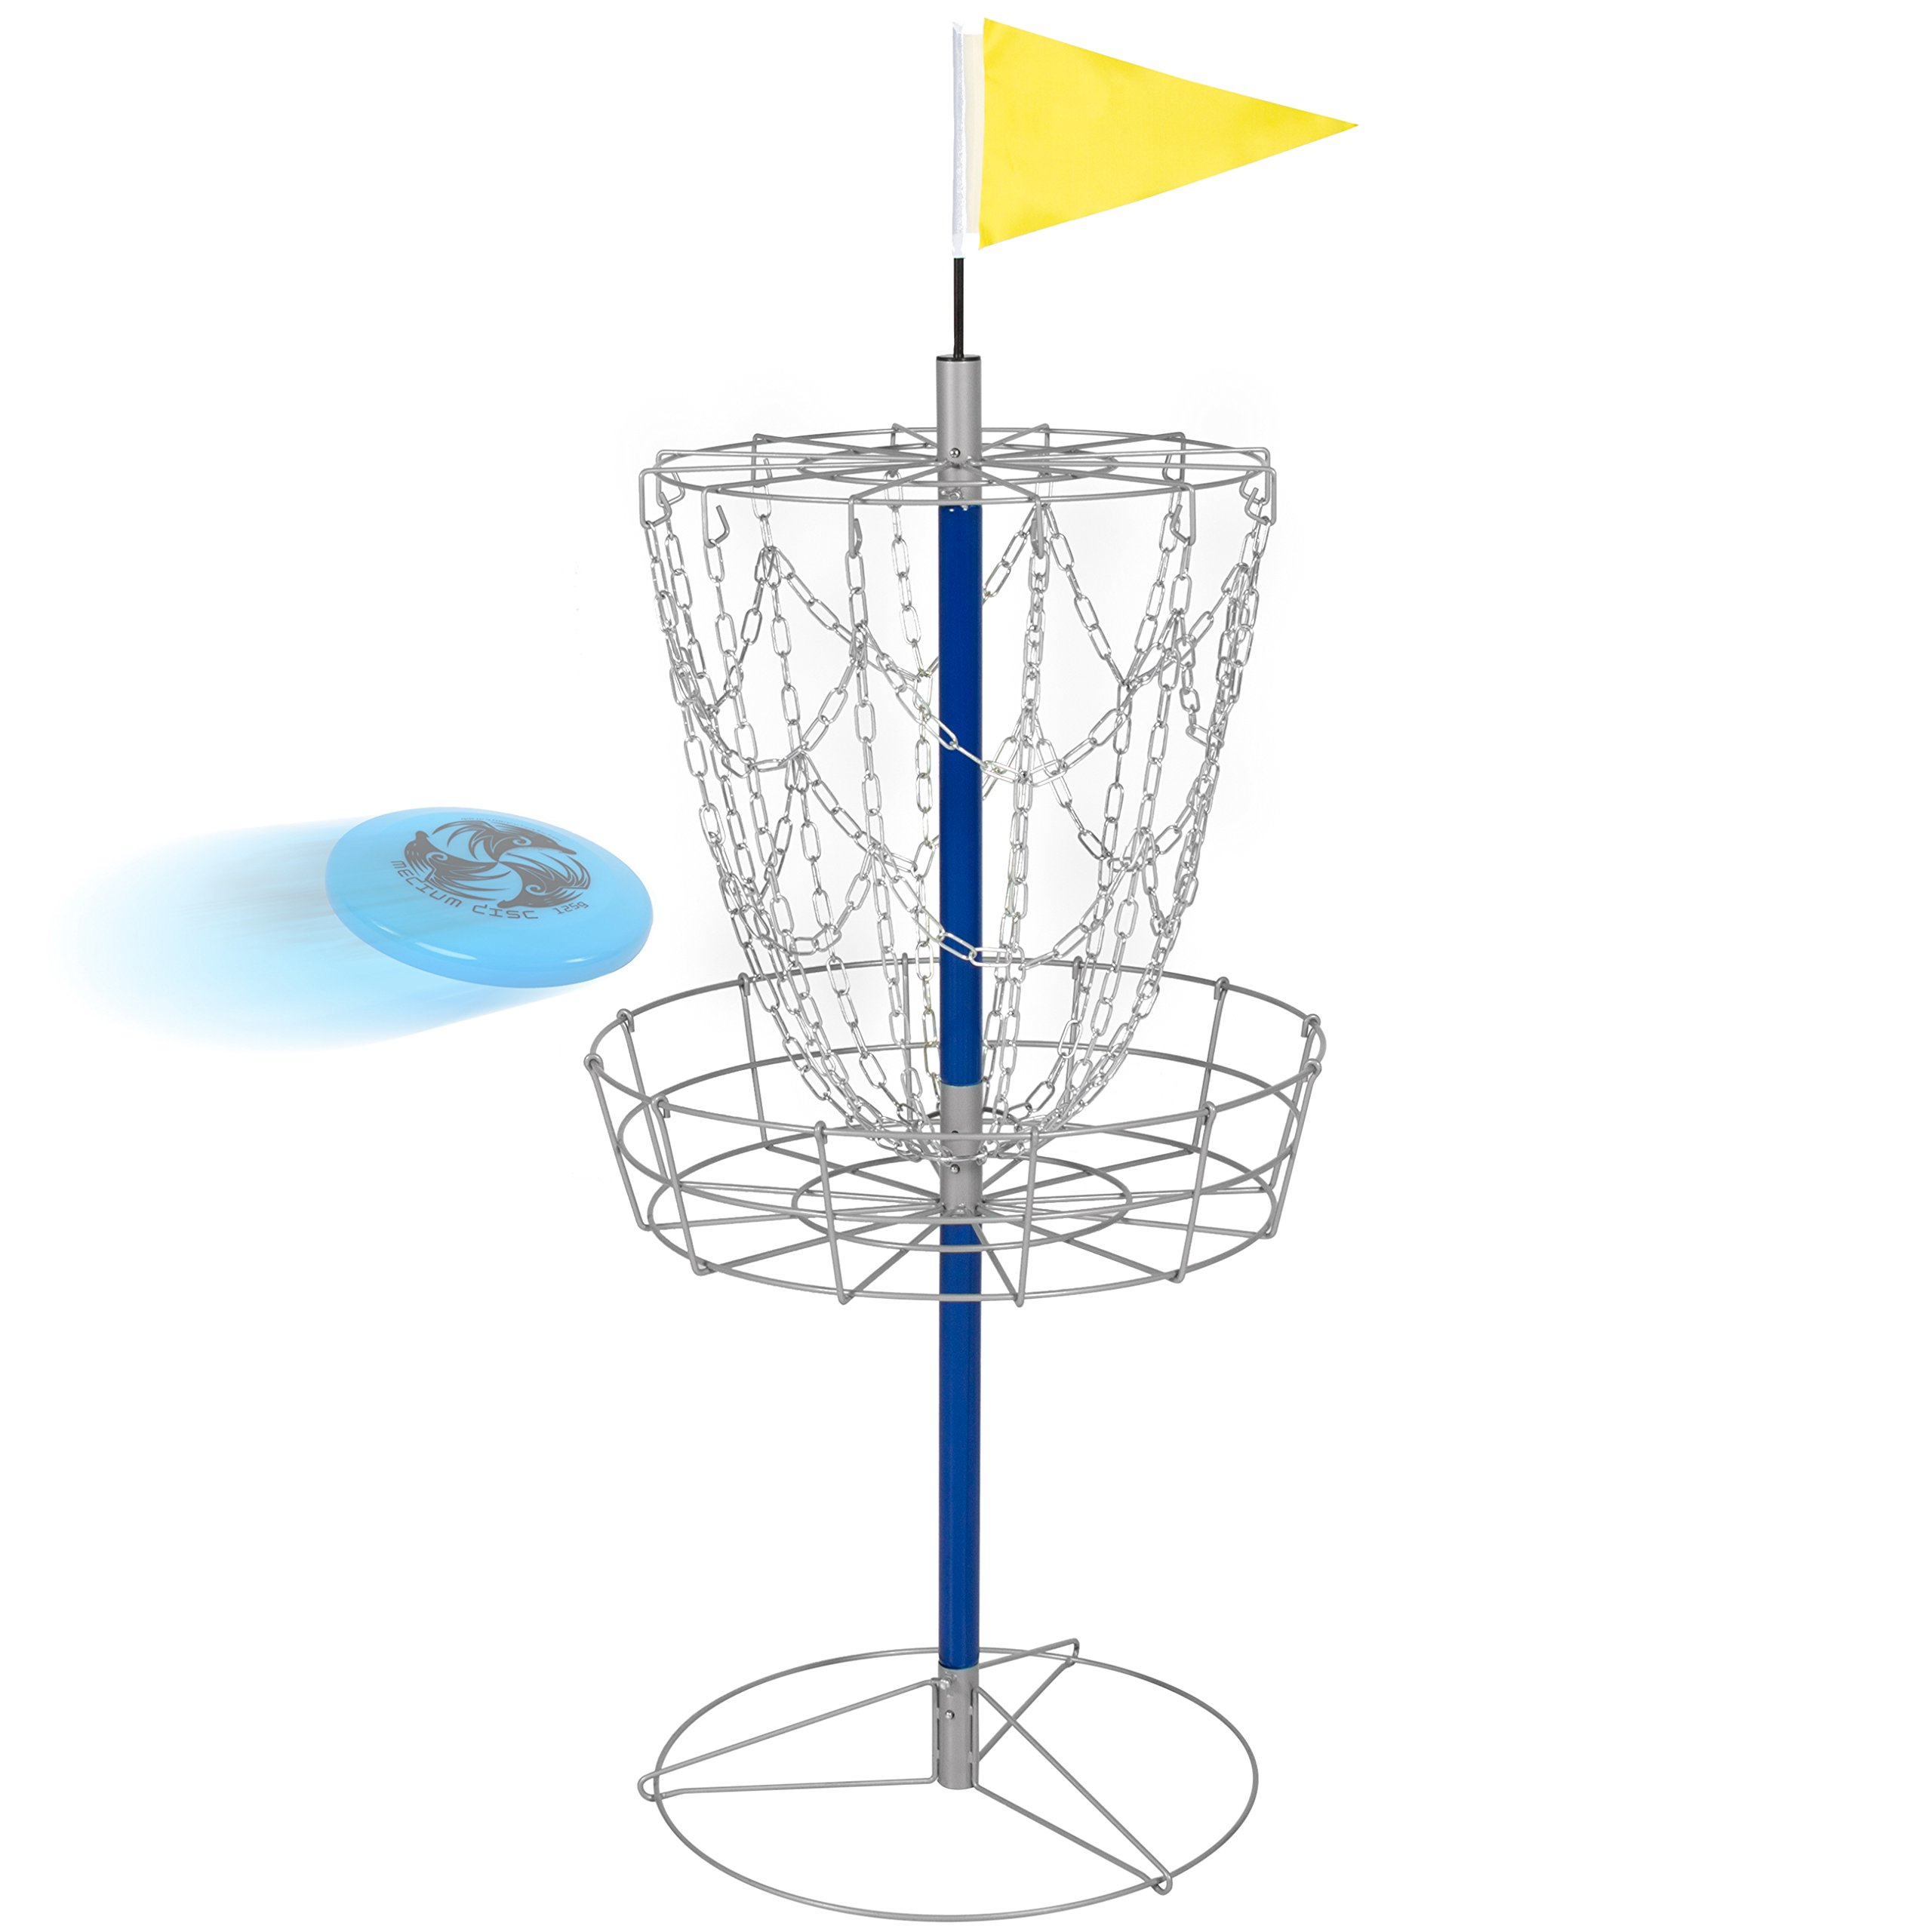 Best Choice Products Portable Frisbee Disc Golf Set w/Basket Target and Double Steel Chains by Best Choice Products